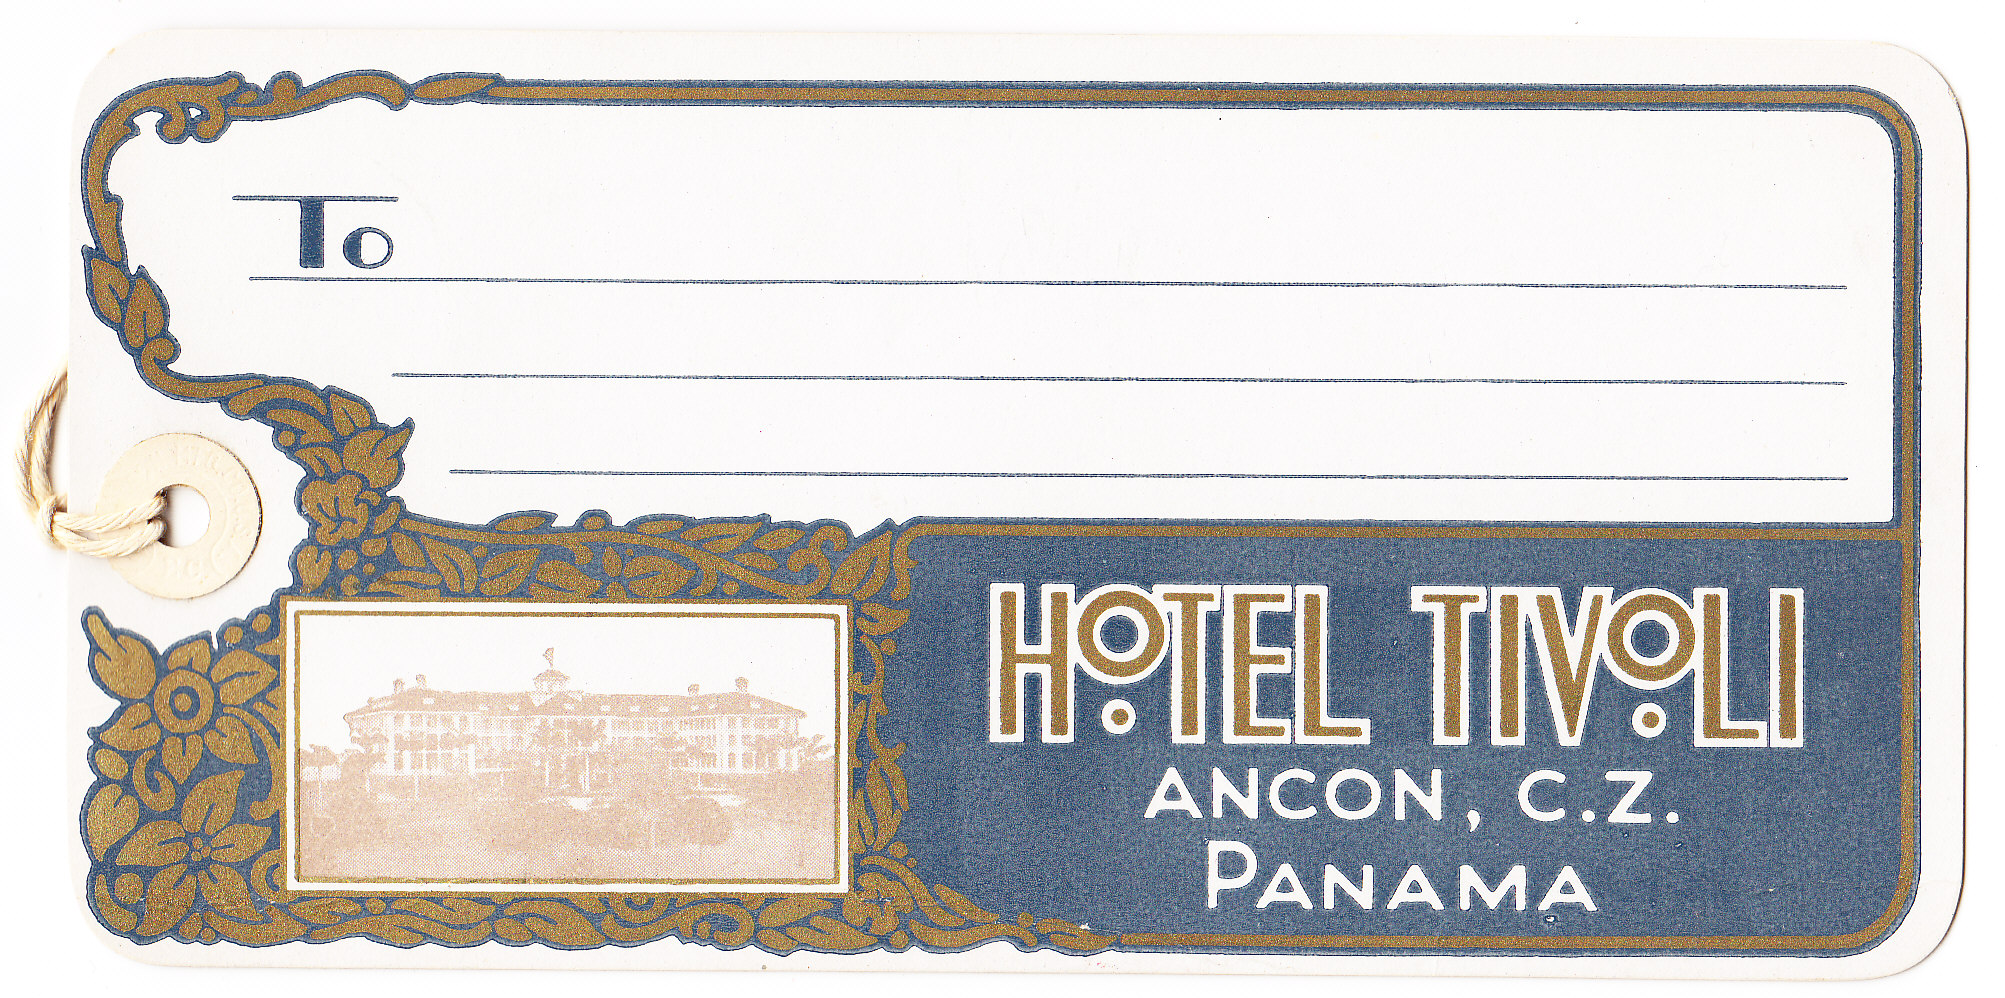 Tivoli Hotel Canal Zone Hotel Tivoli The Panama Canal Museum Collection At Uf